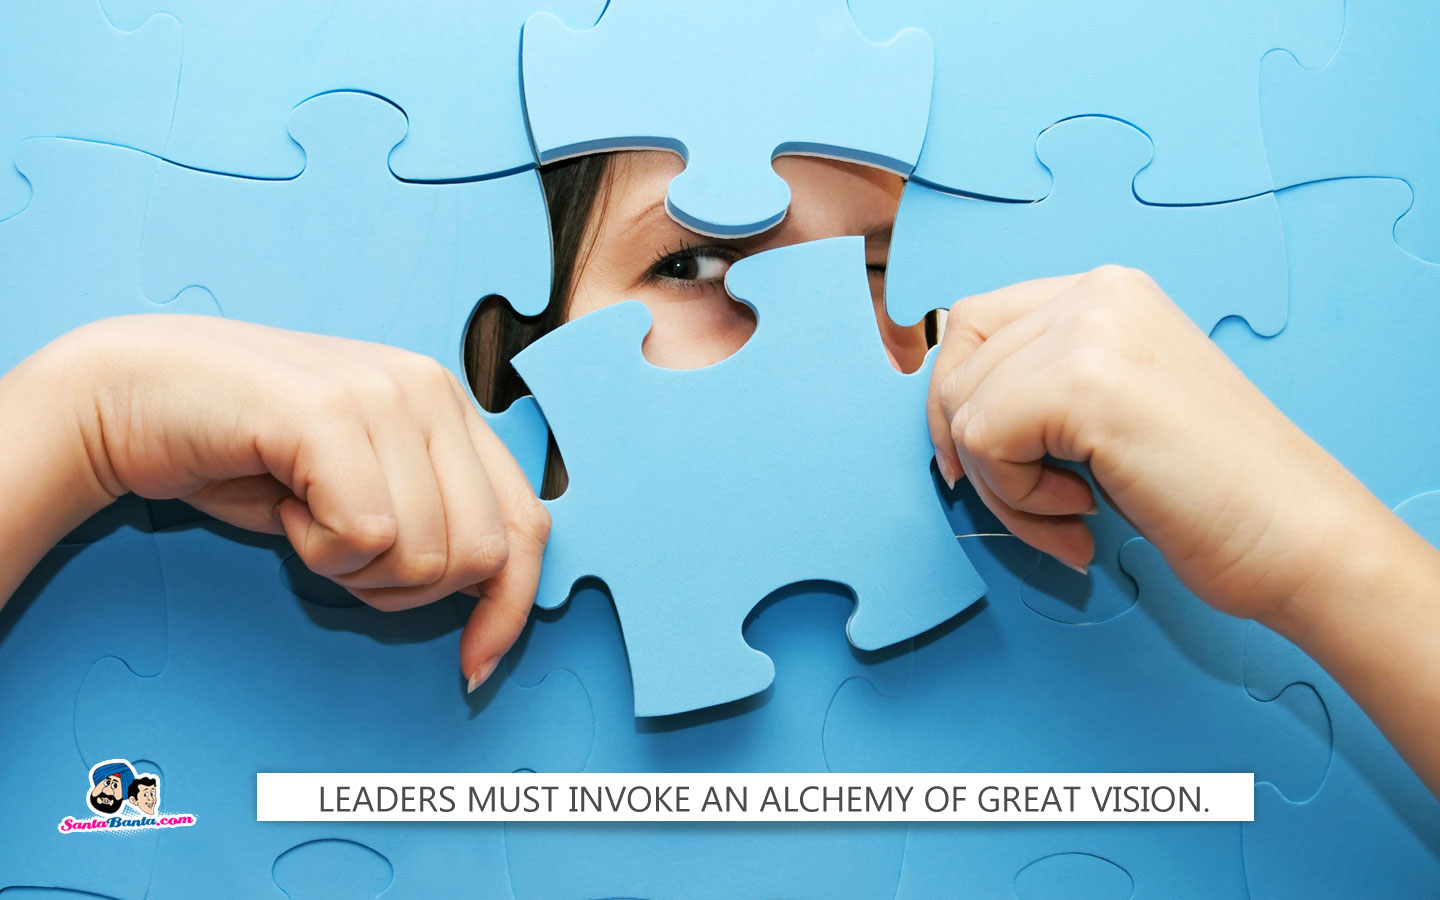 Leaders Must Invoke An Alchemy Of Great Vision